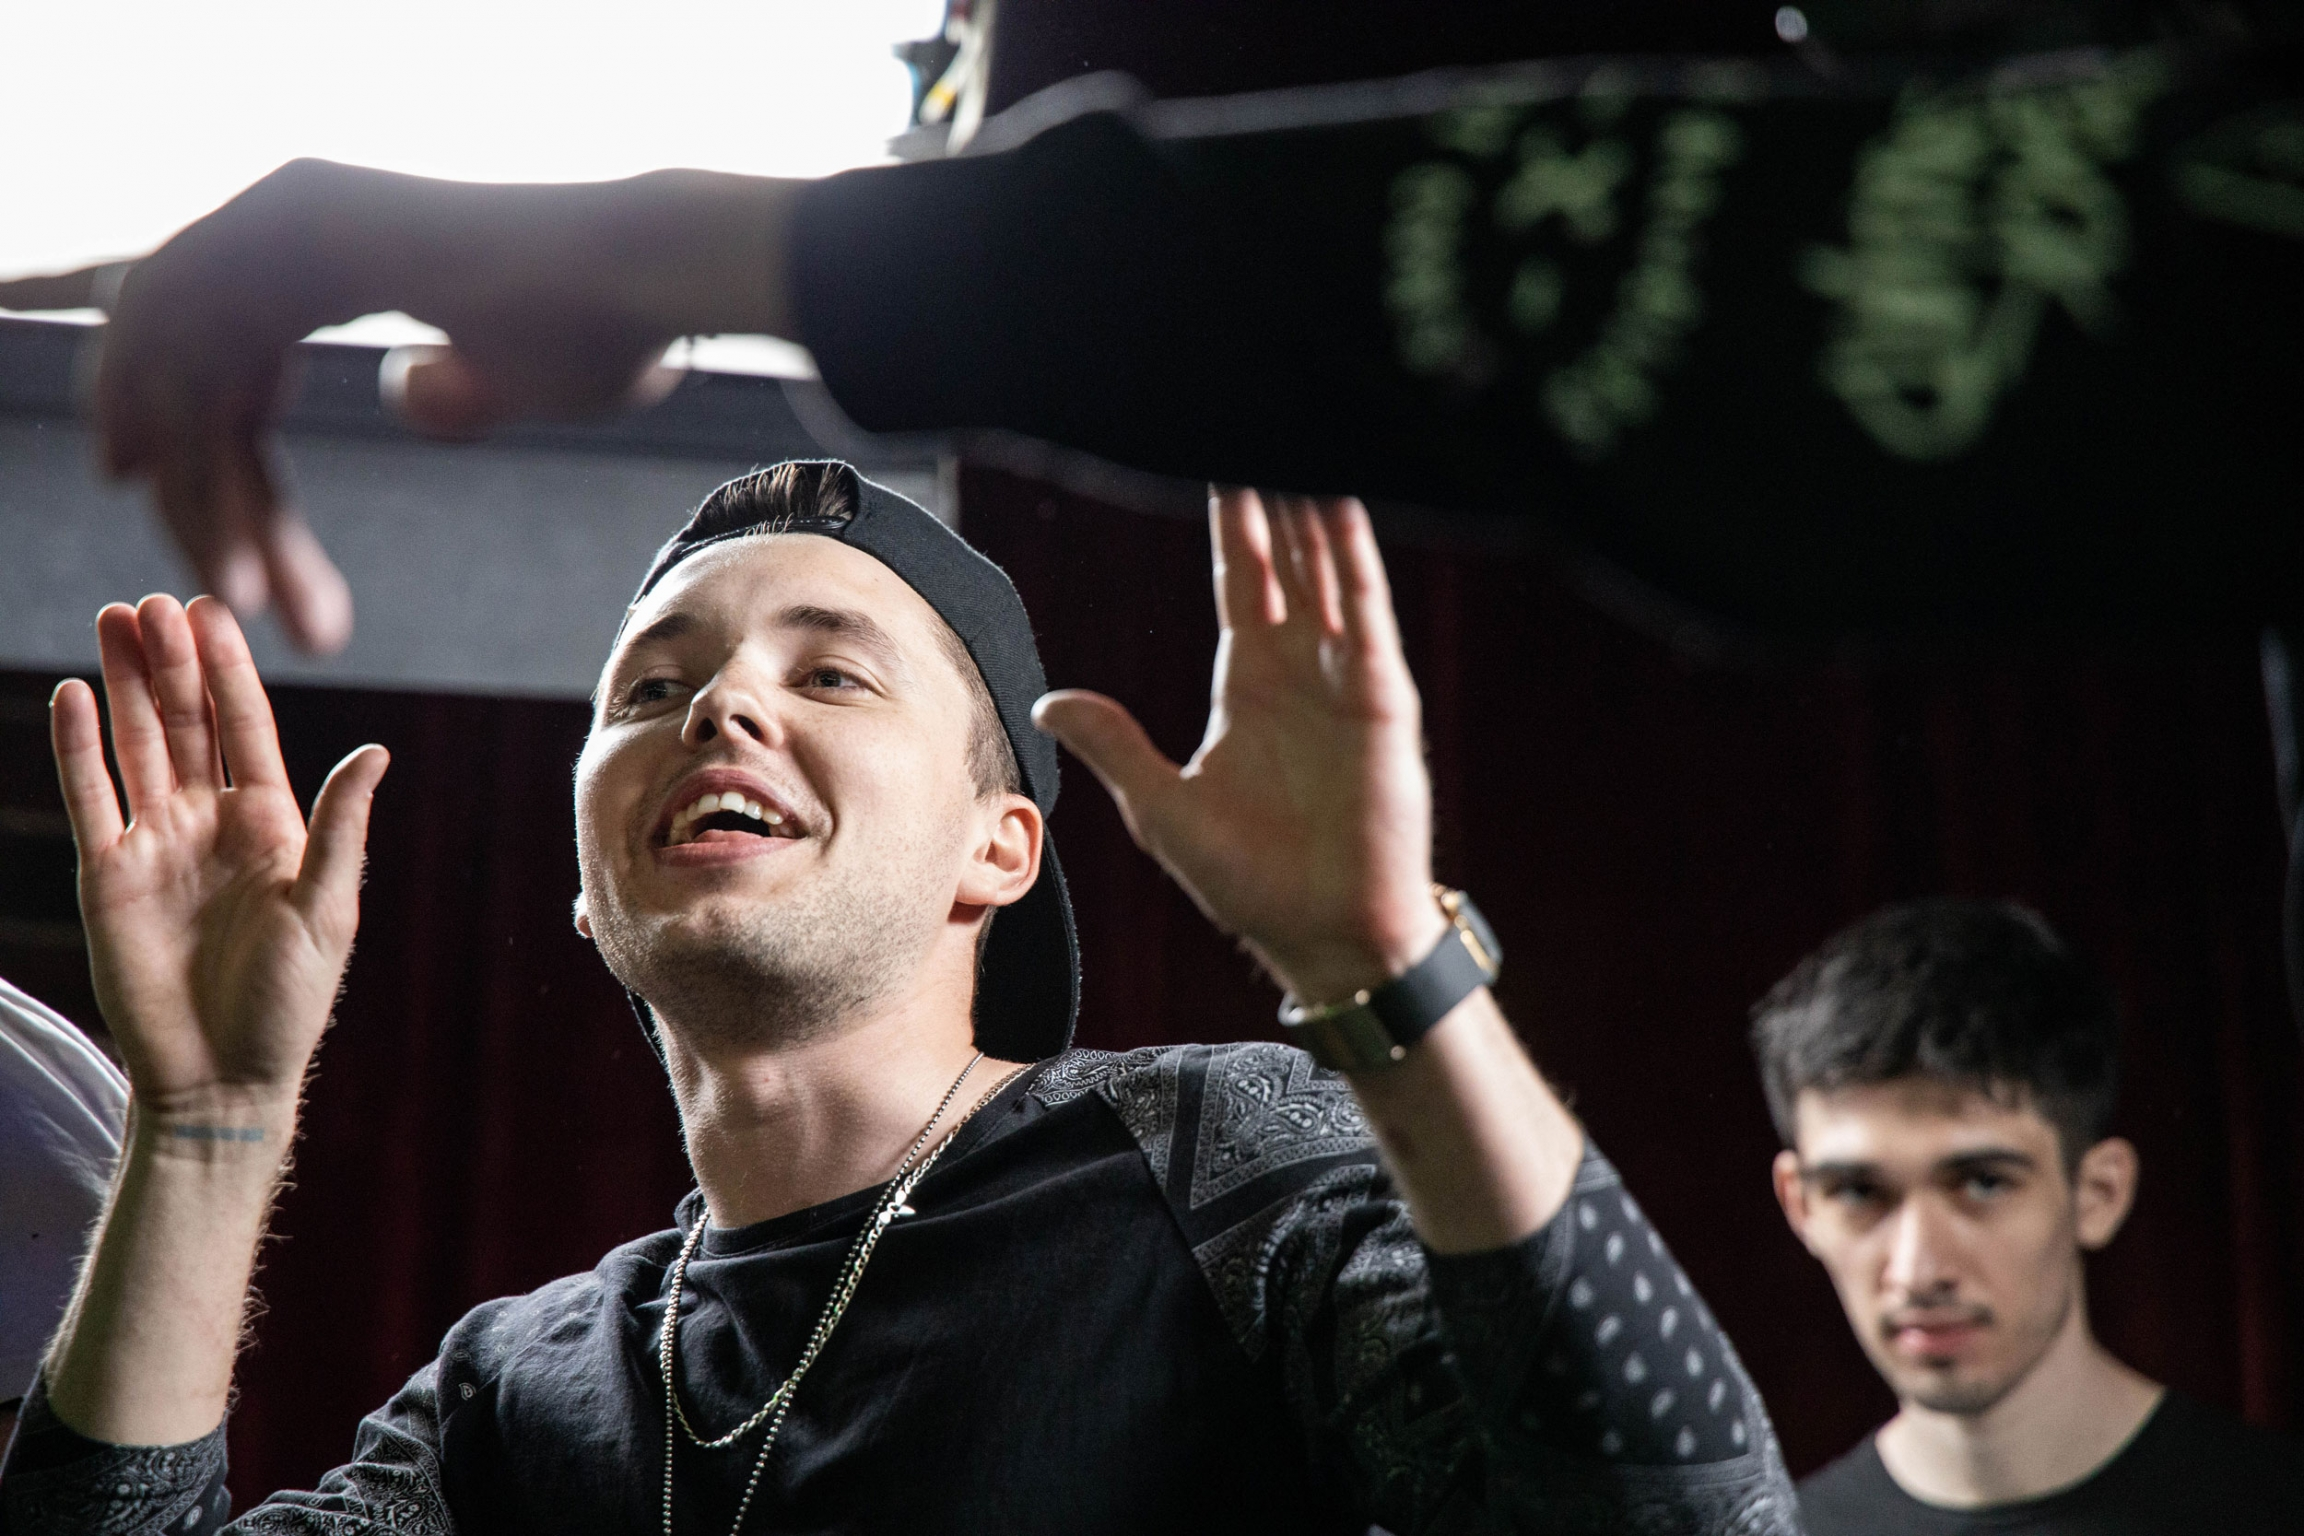 A rapper raises his hands at a crowd.